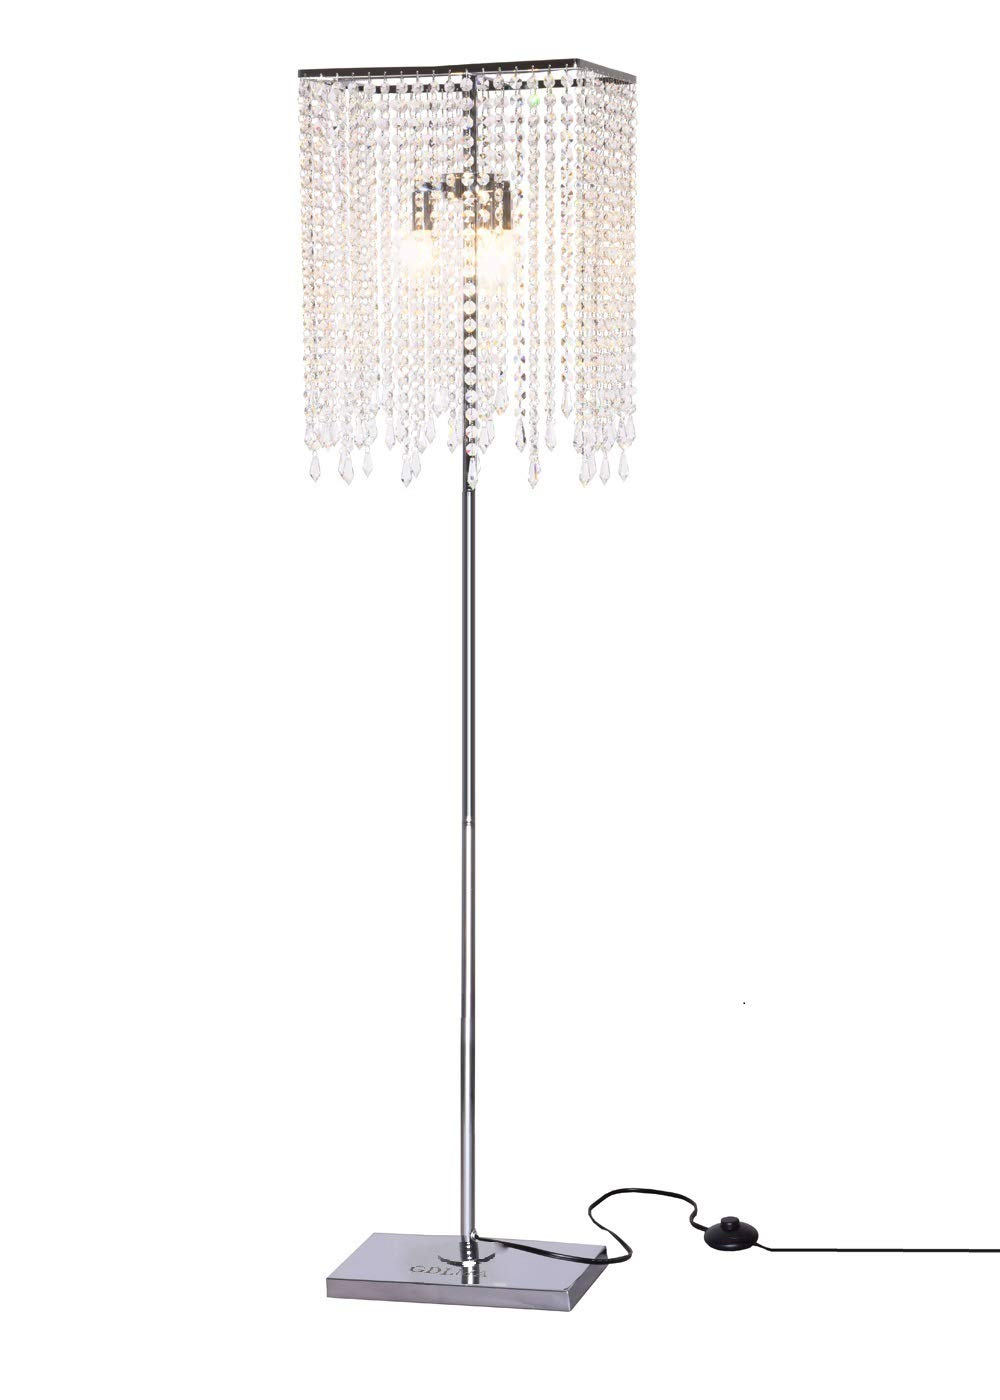 GDLMA Crystal Floor Lamp for Bedroom,Living Room,3-Lights,15 FT Long Cord with On/off Switch in Line,Chrome Silver